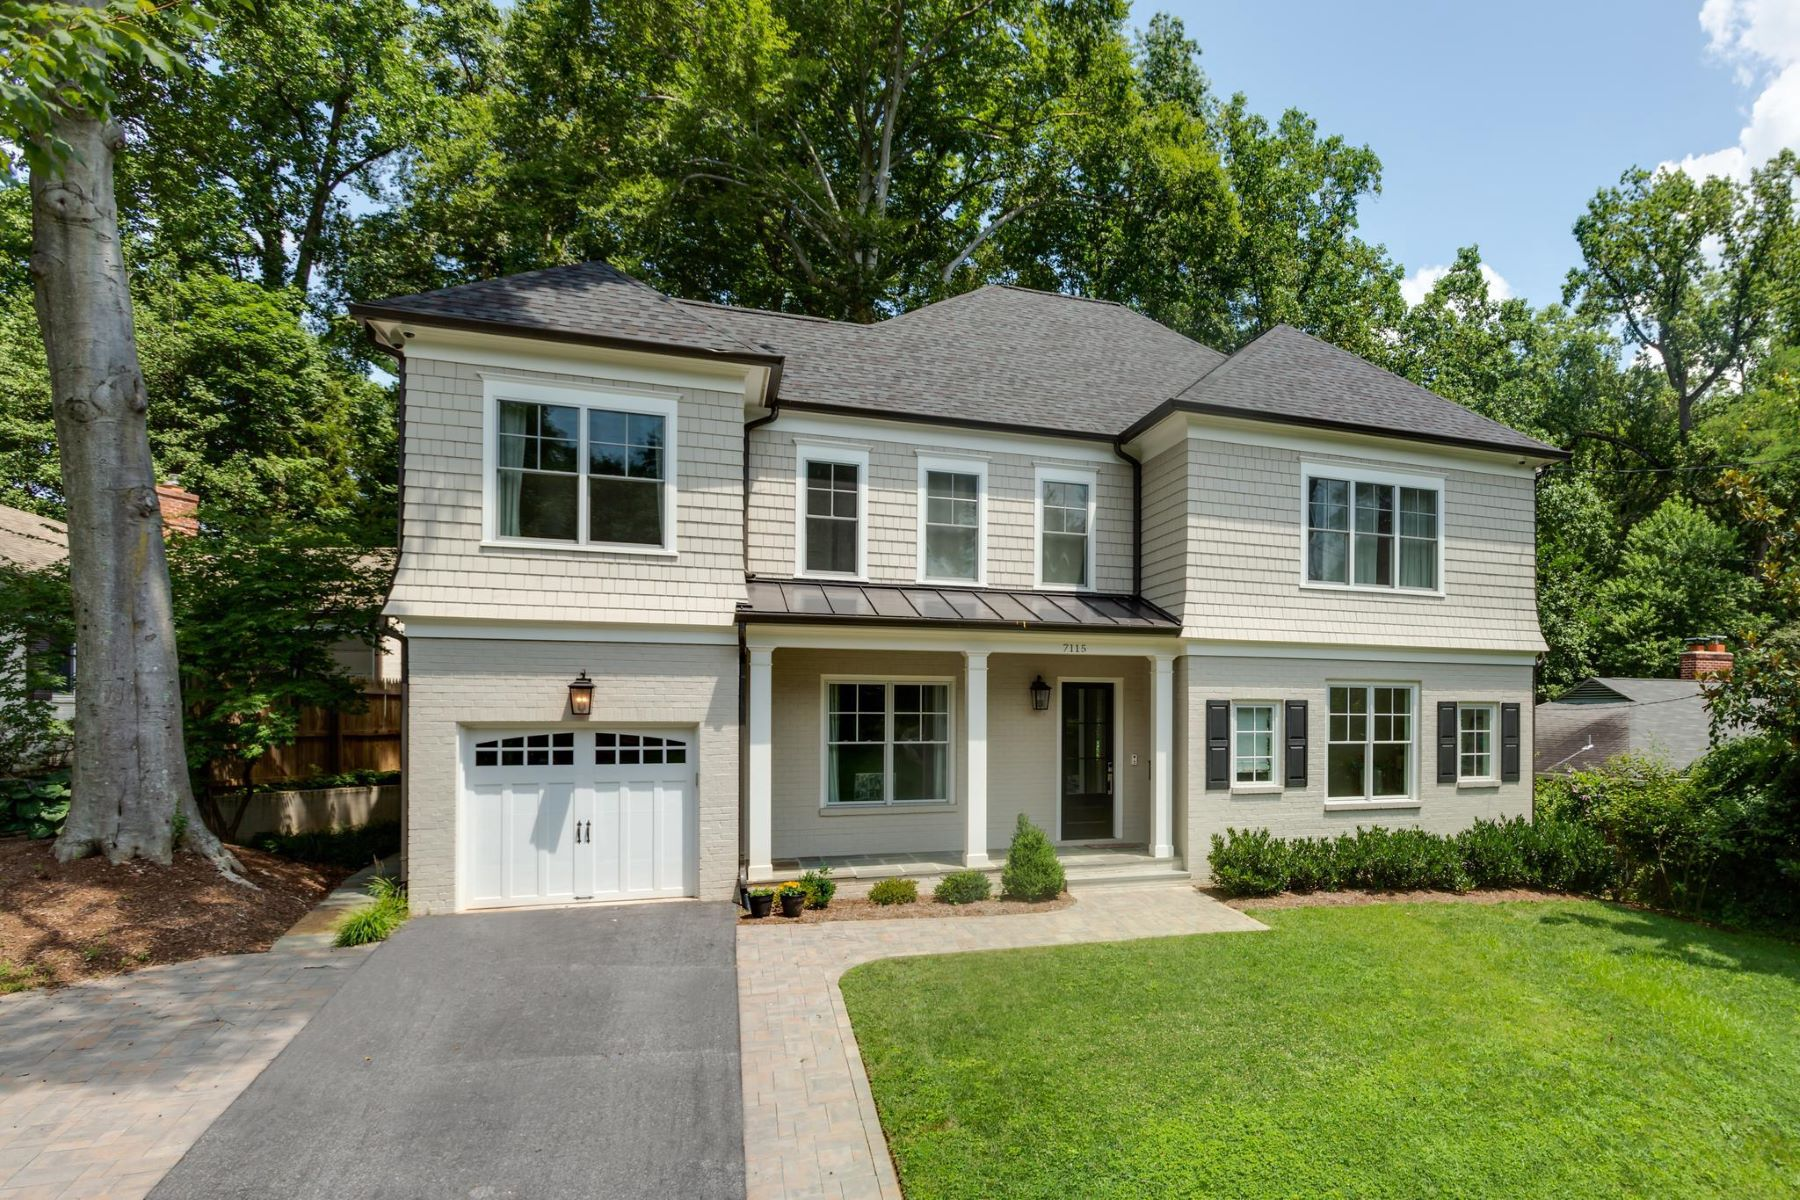 Single Family Homes for Active at 7115 Edgevale St Chevy Chase, Maryland 20815 United States